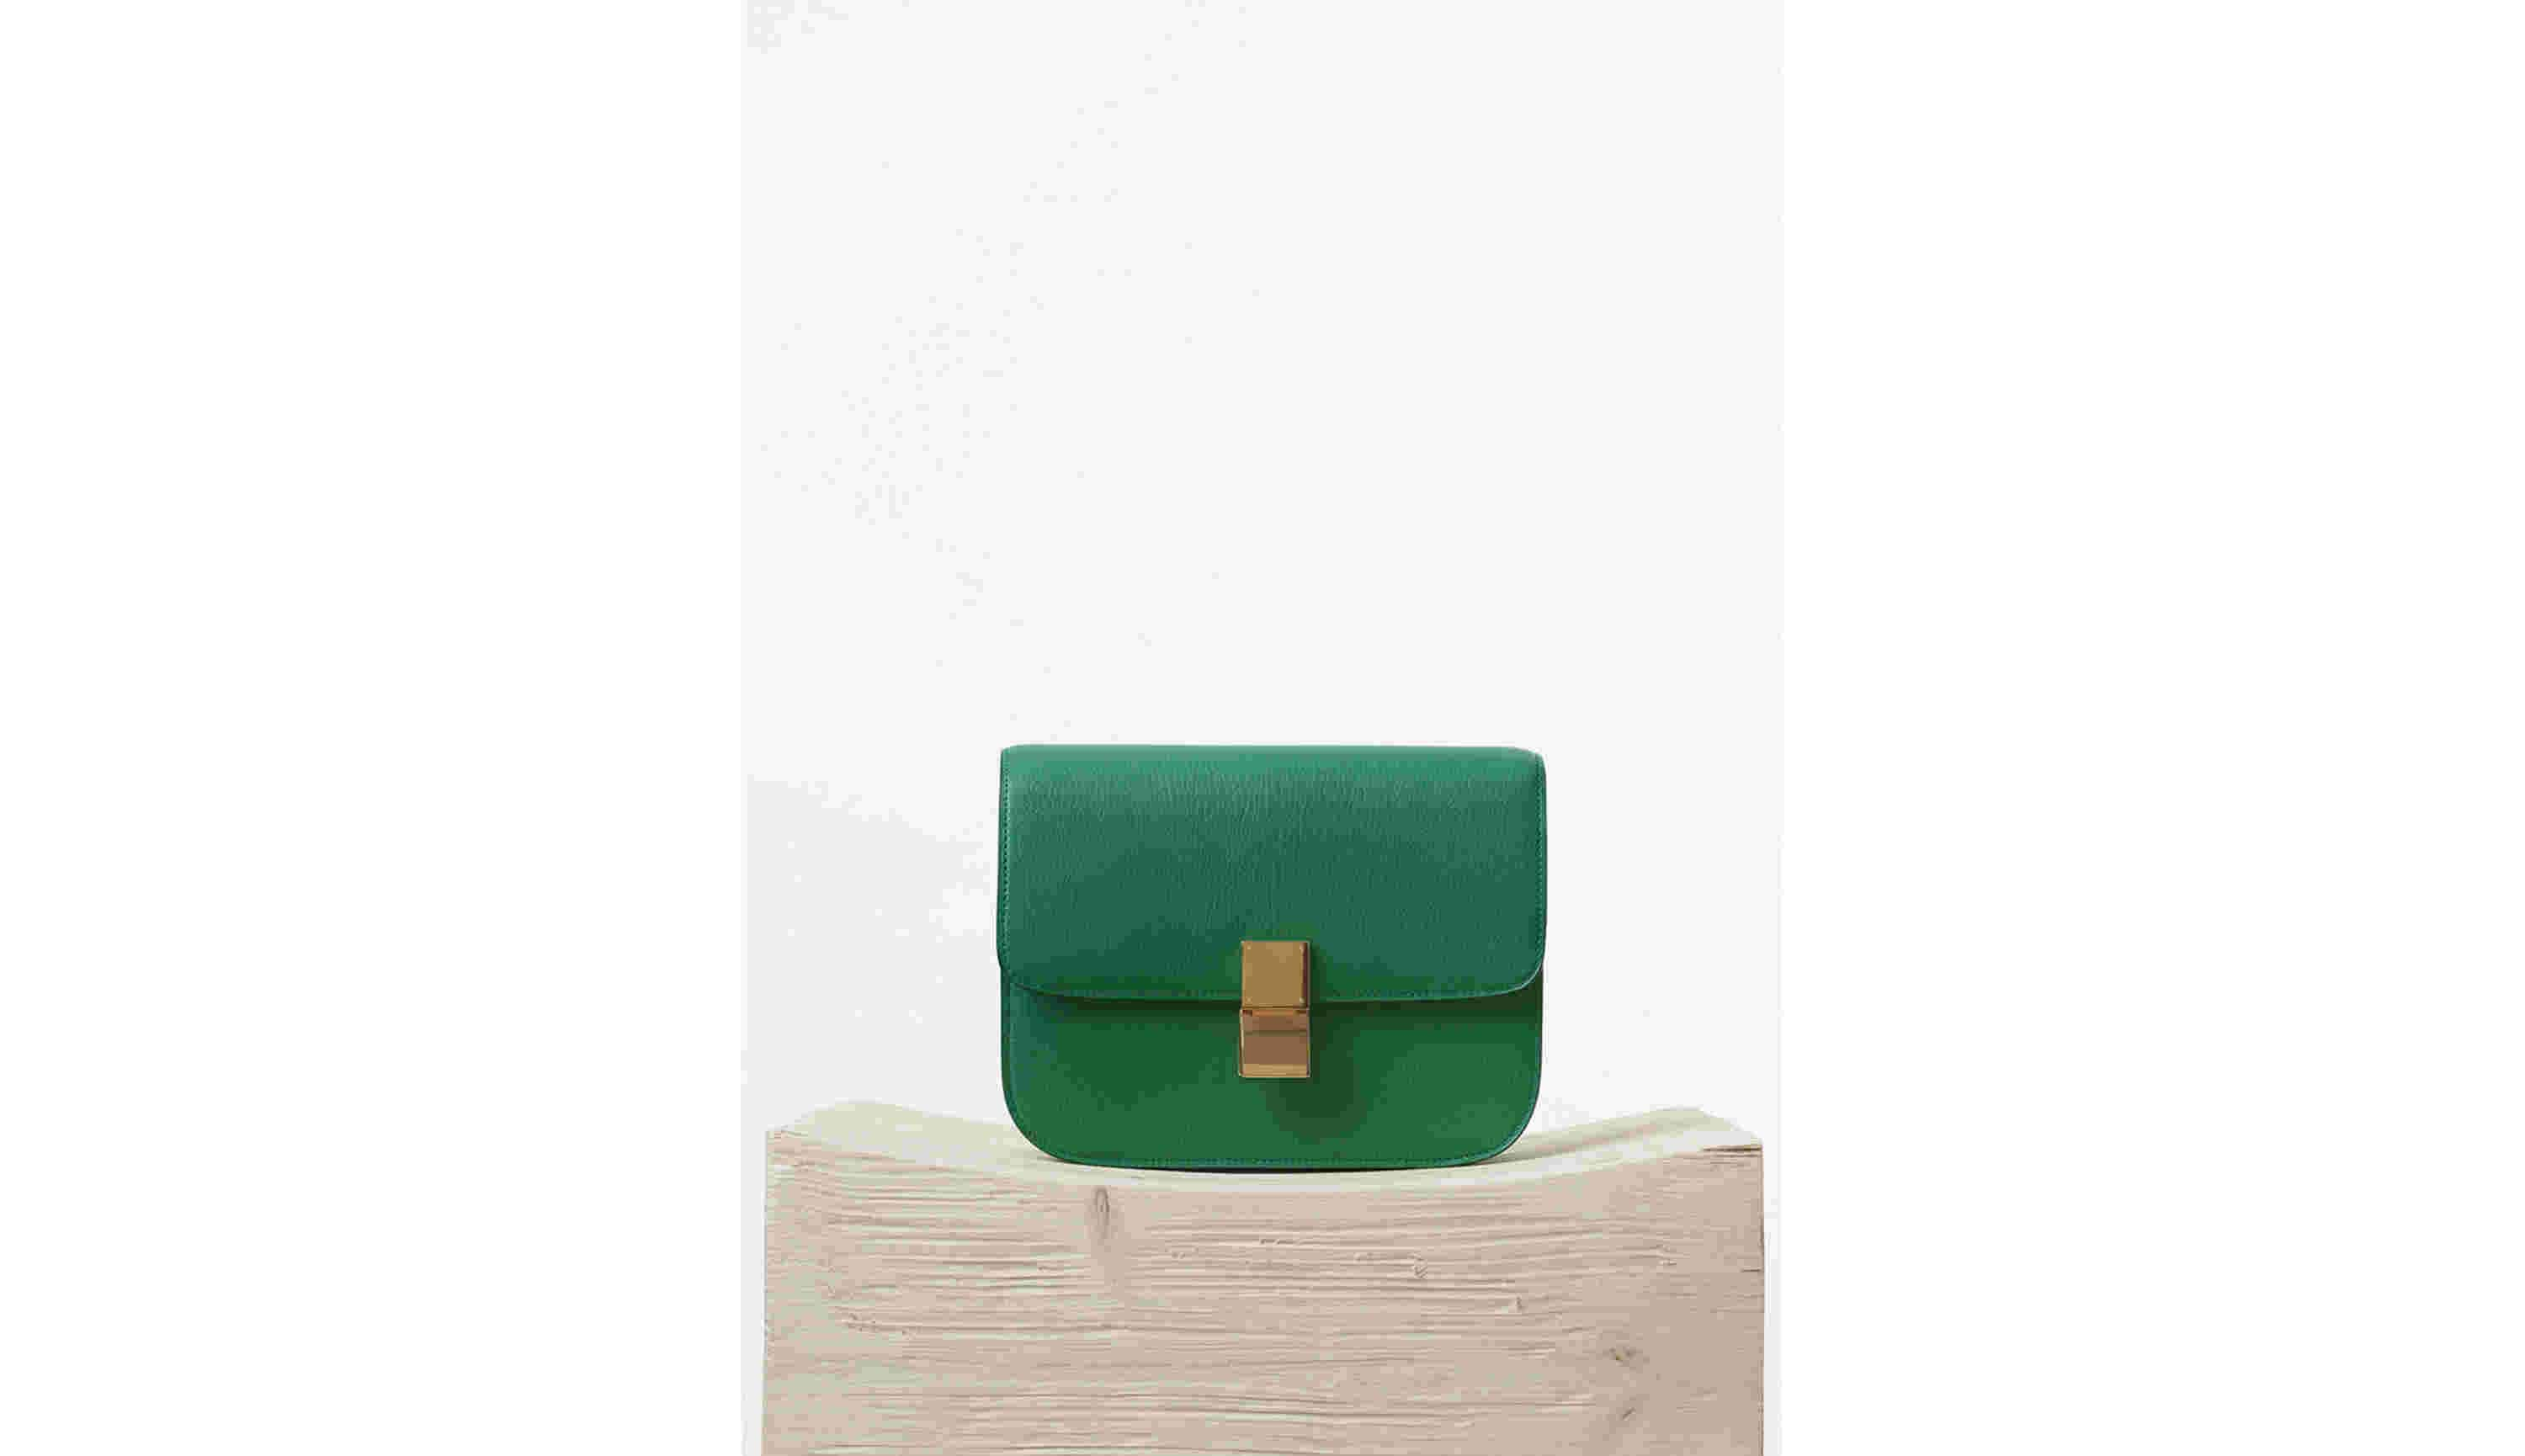 CÉLINE Summer 2015 Palm Goatskin Medium Classic